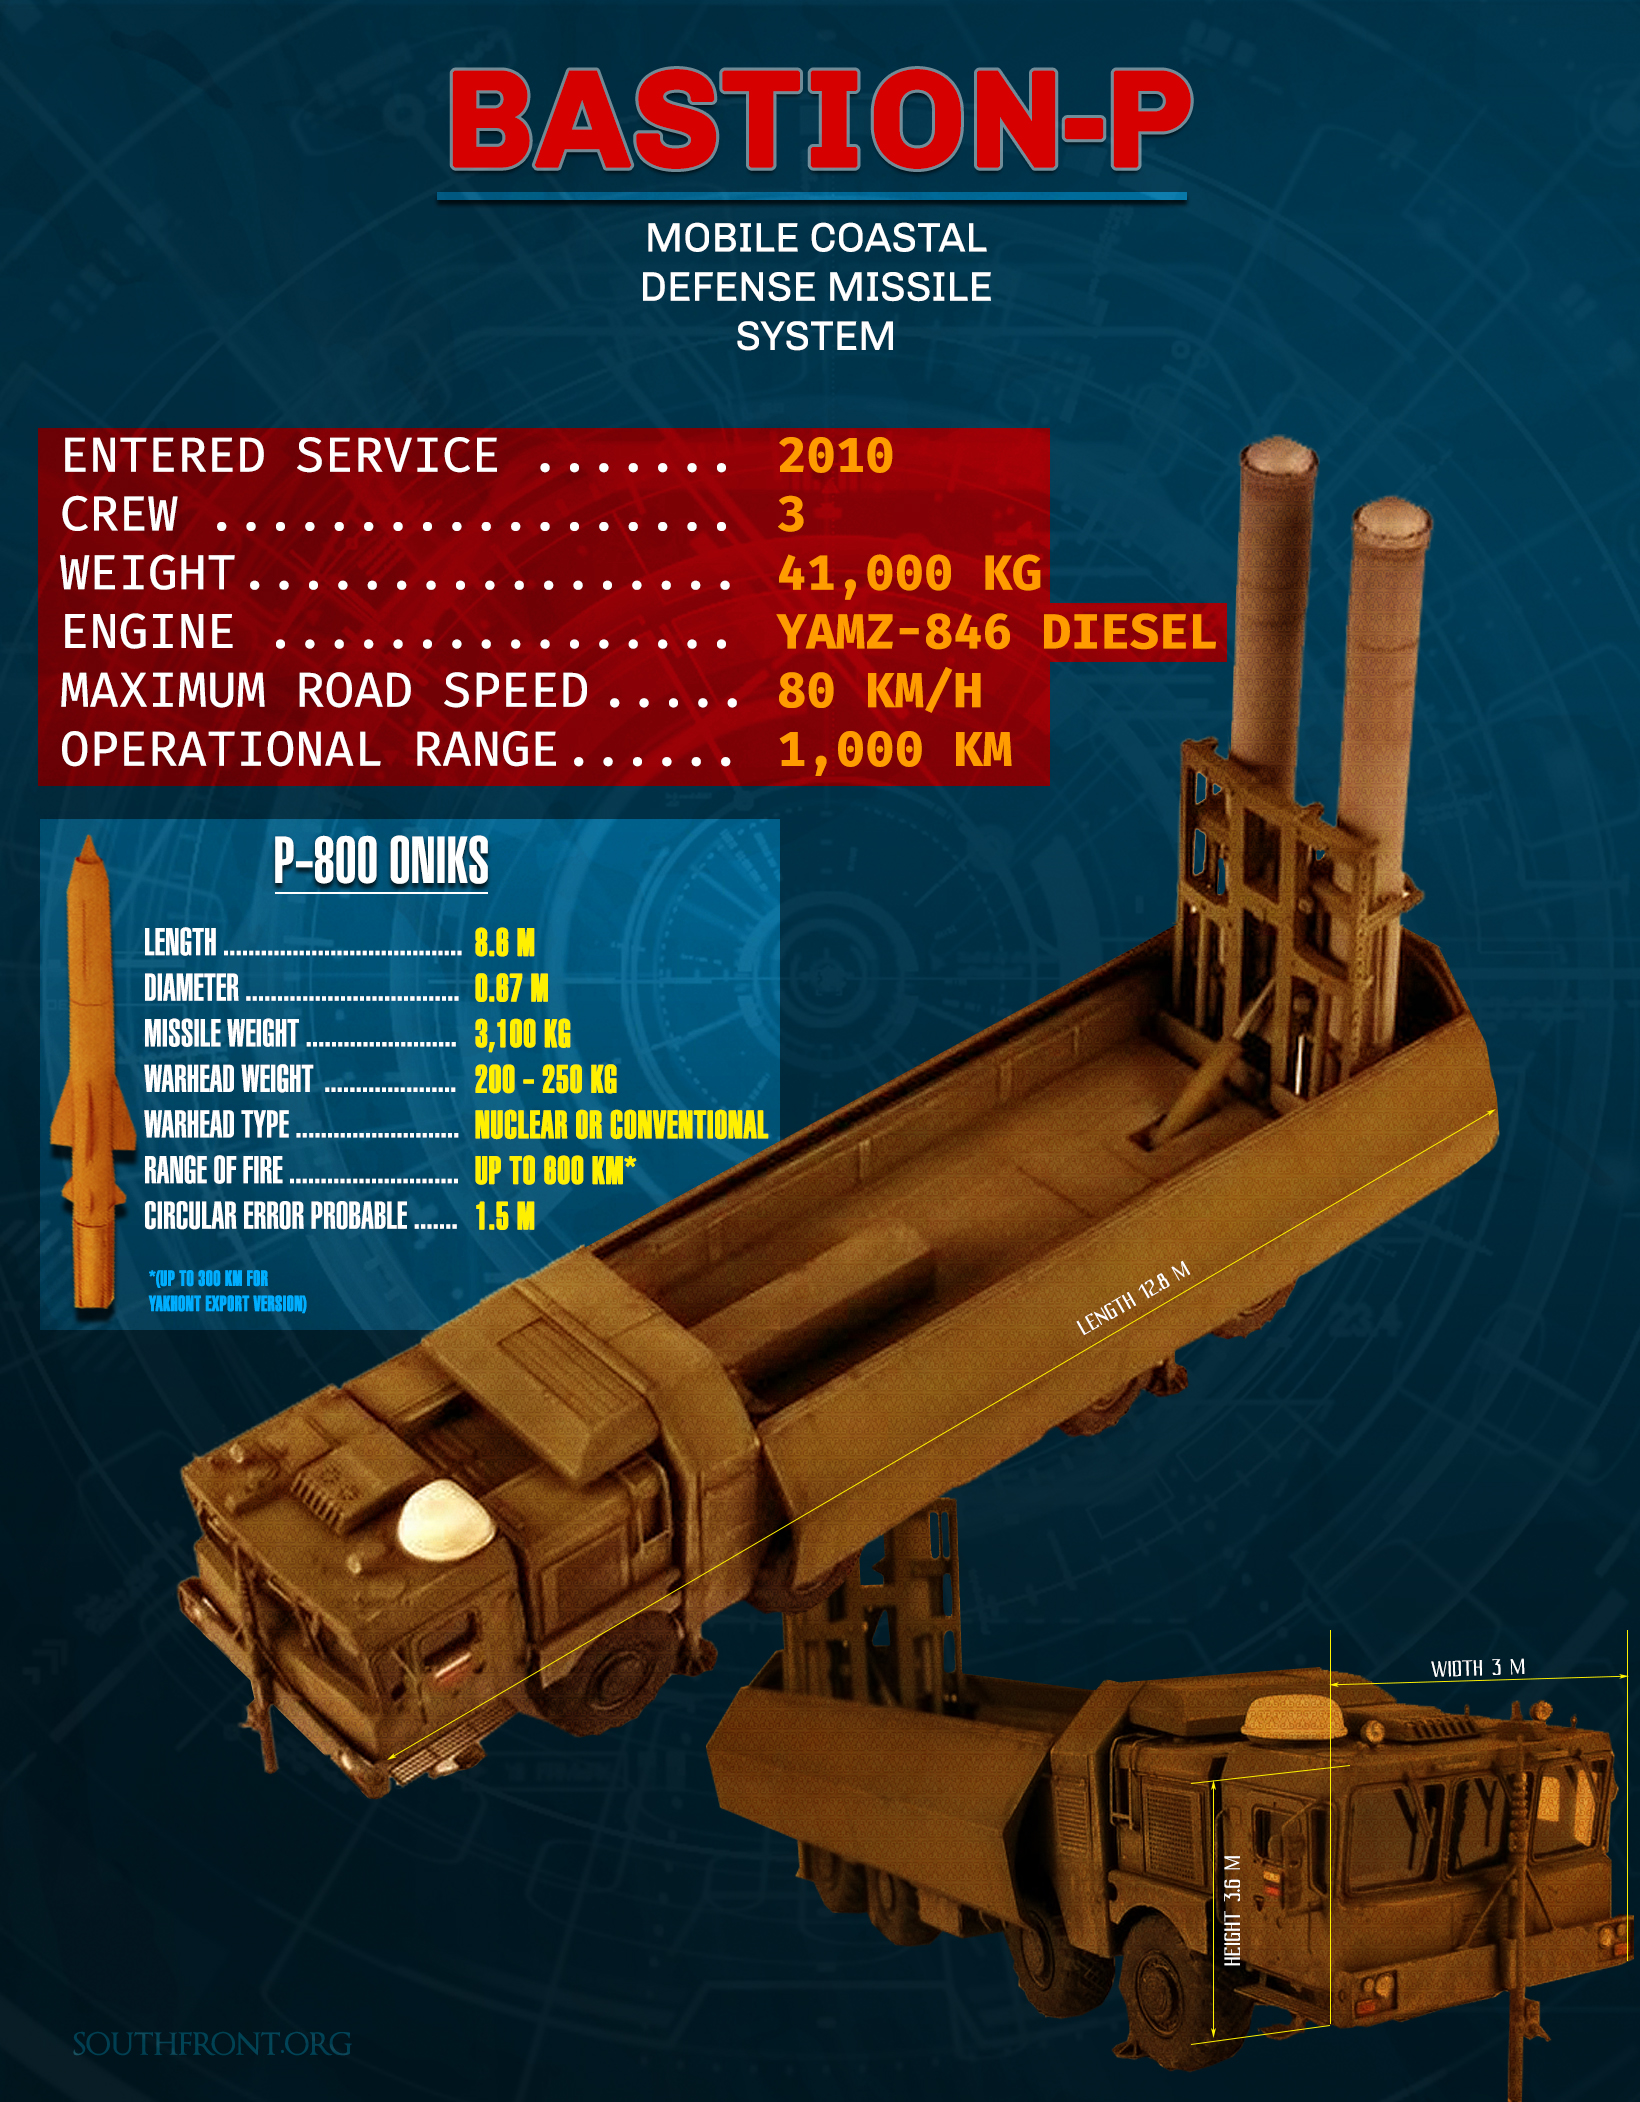 Bastion-P Coastal Defense Missile System (Infographics)